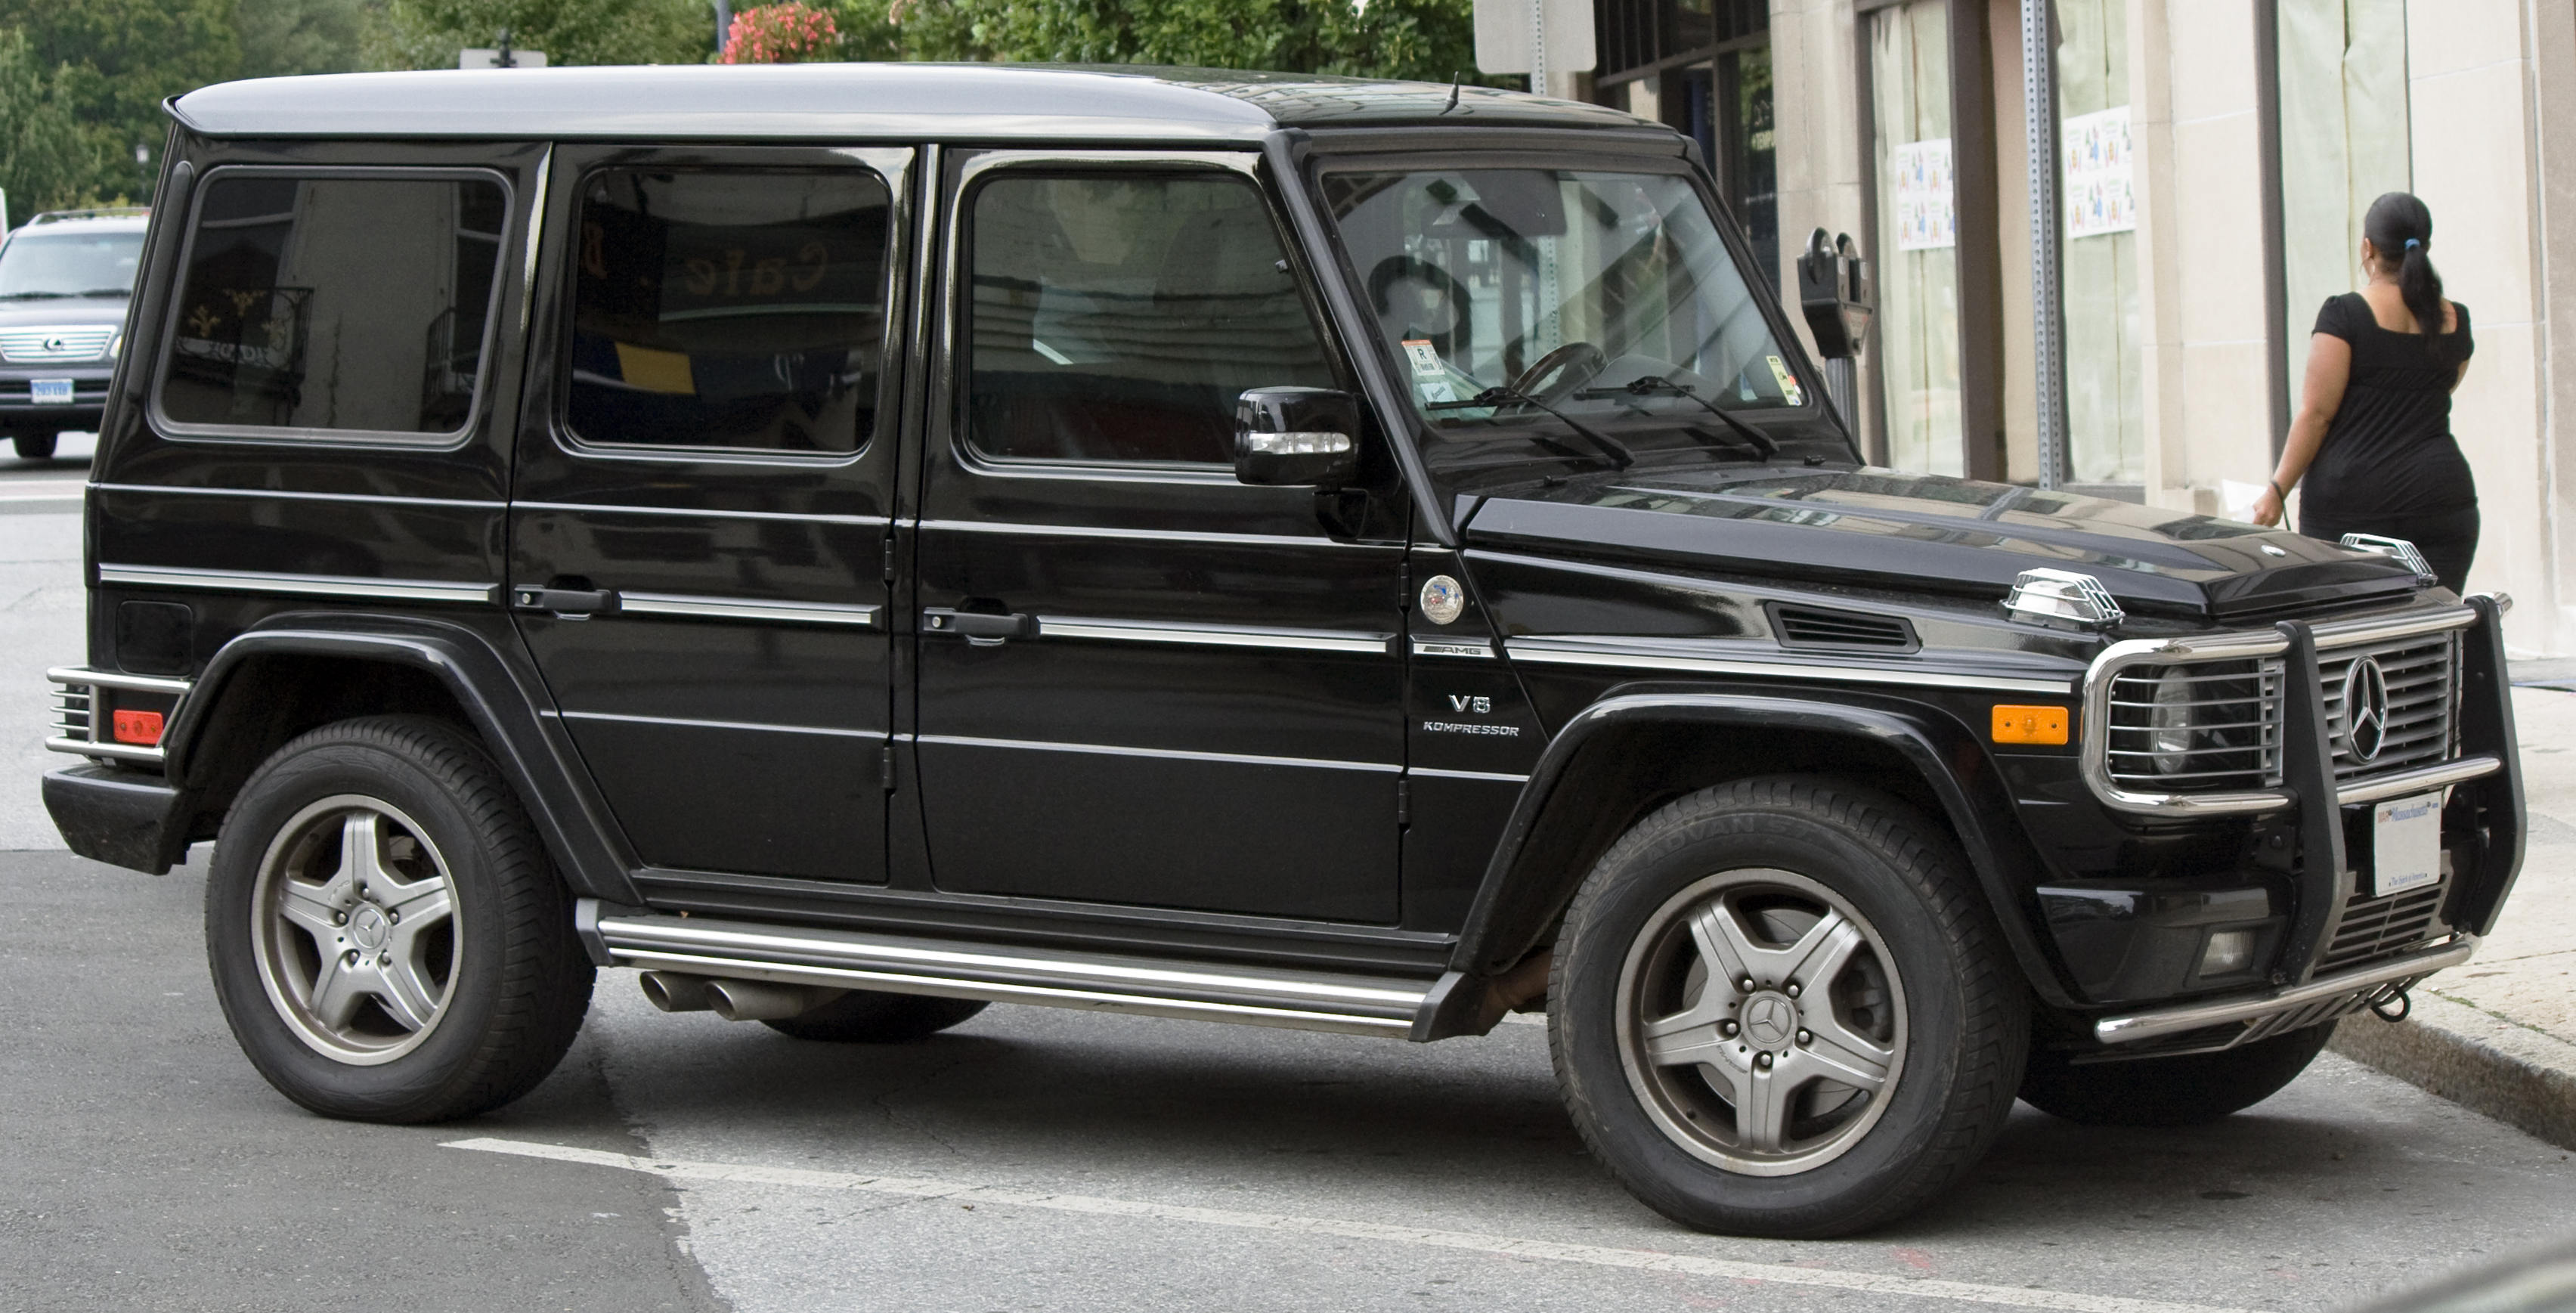 Mercedes G Wagon >> File:MB G55 AMG.jpg - Wikimedia Commons